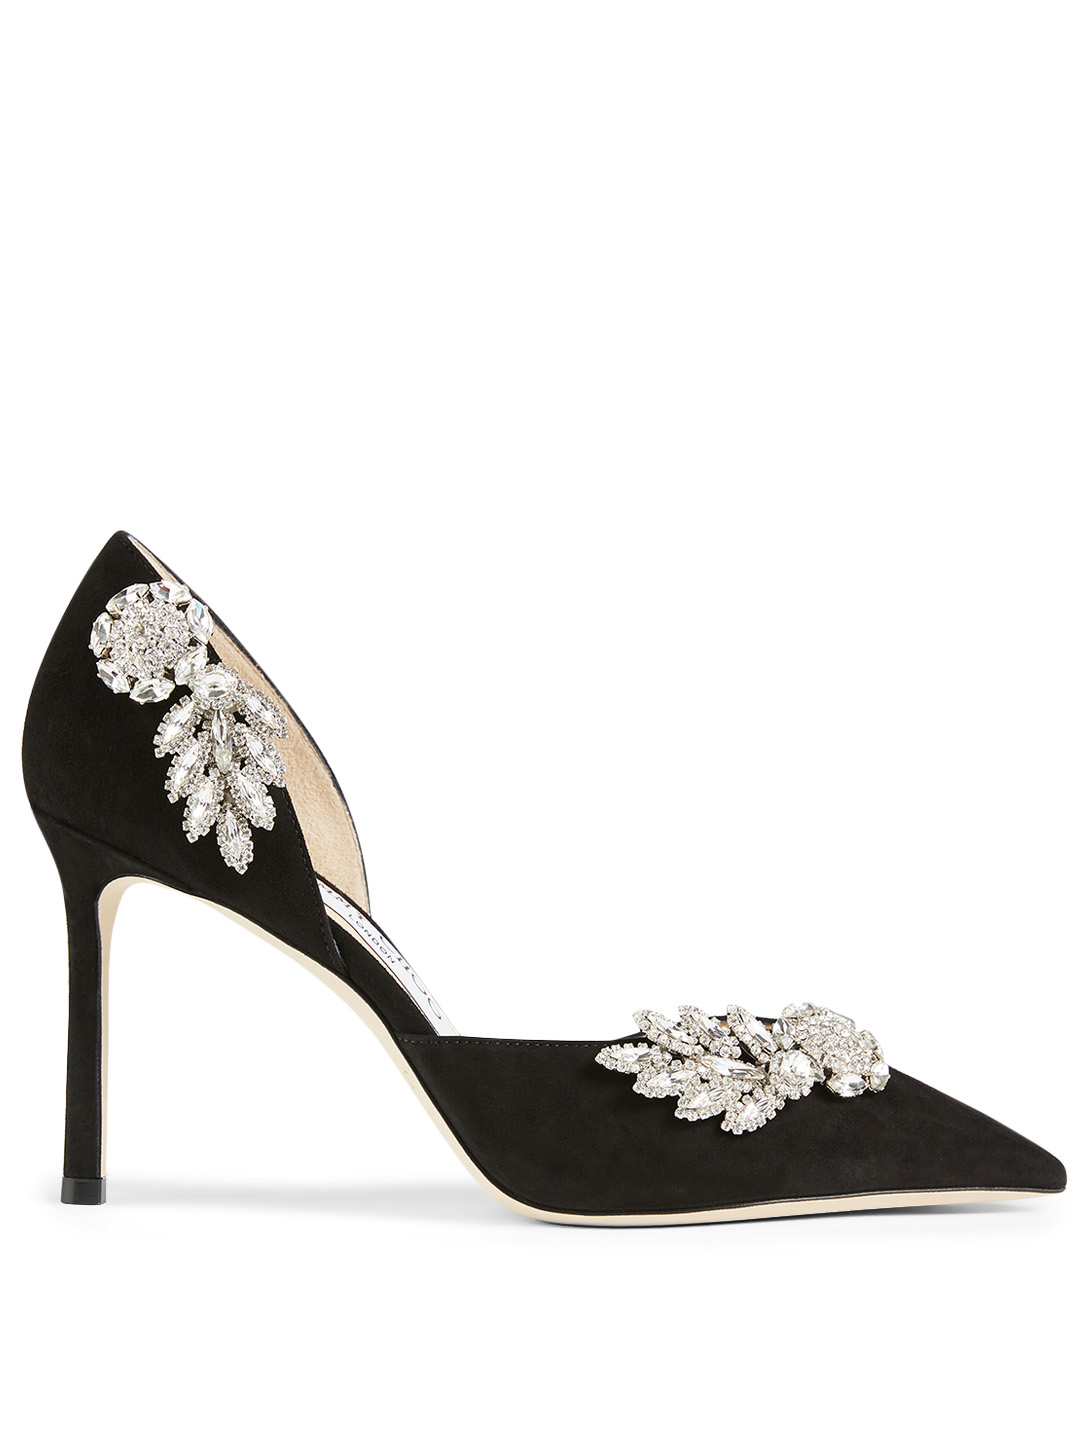 JIMMY CHOO Teja 85 Suede D'Orsay Pumps With Crystal Wings Women's Black